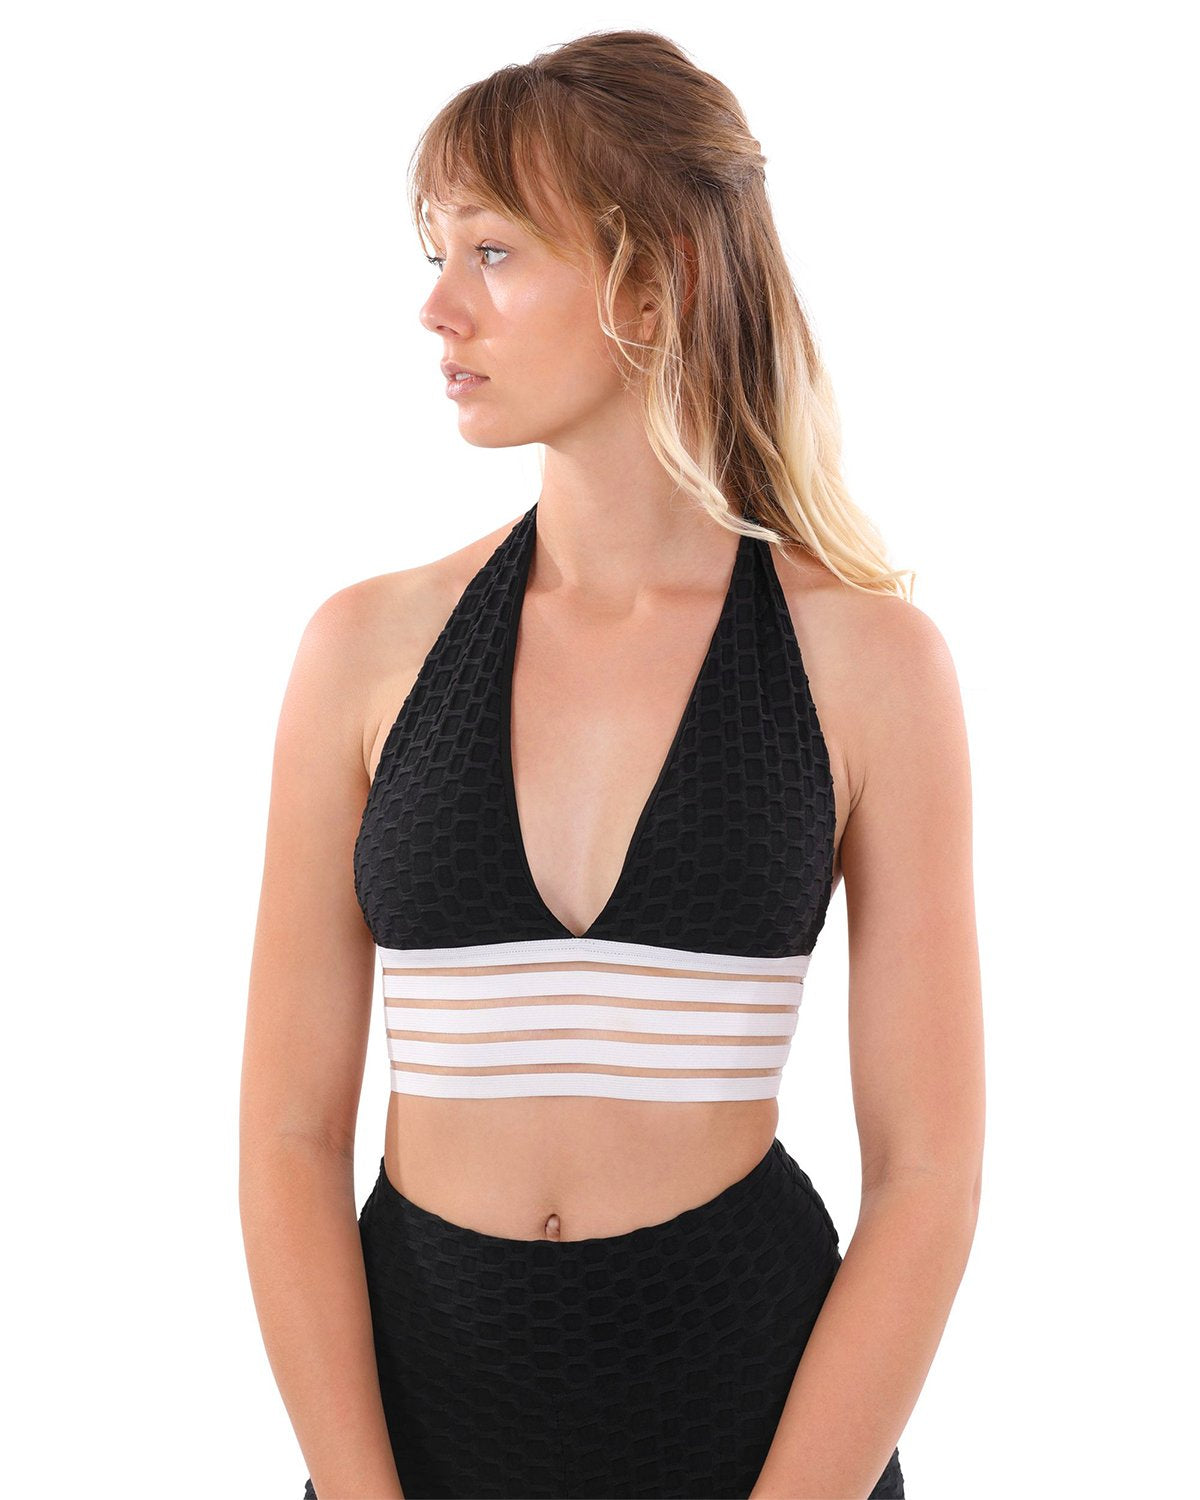 Bentley Halter-Neck Sports Bra - Black  & White